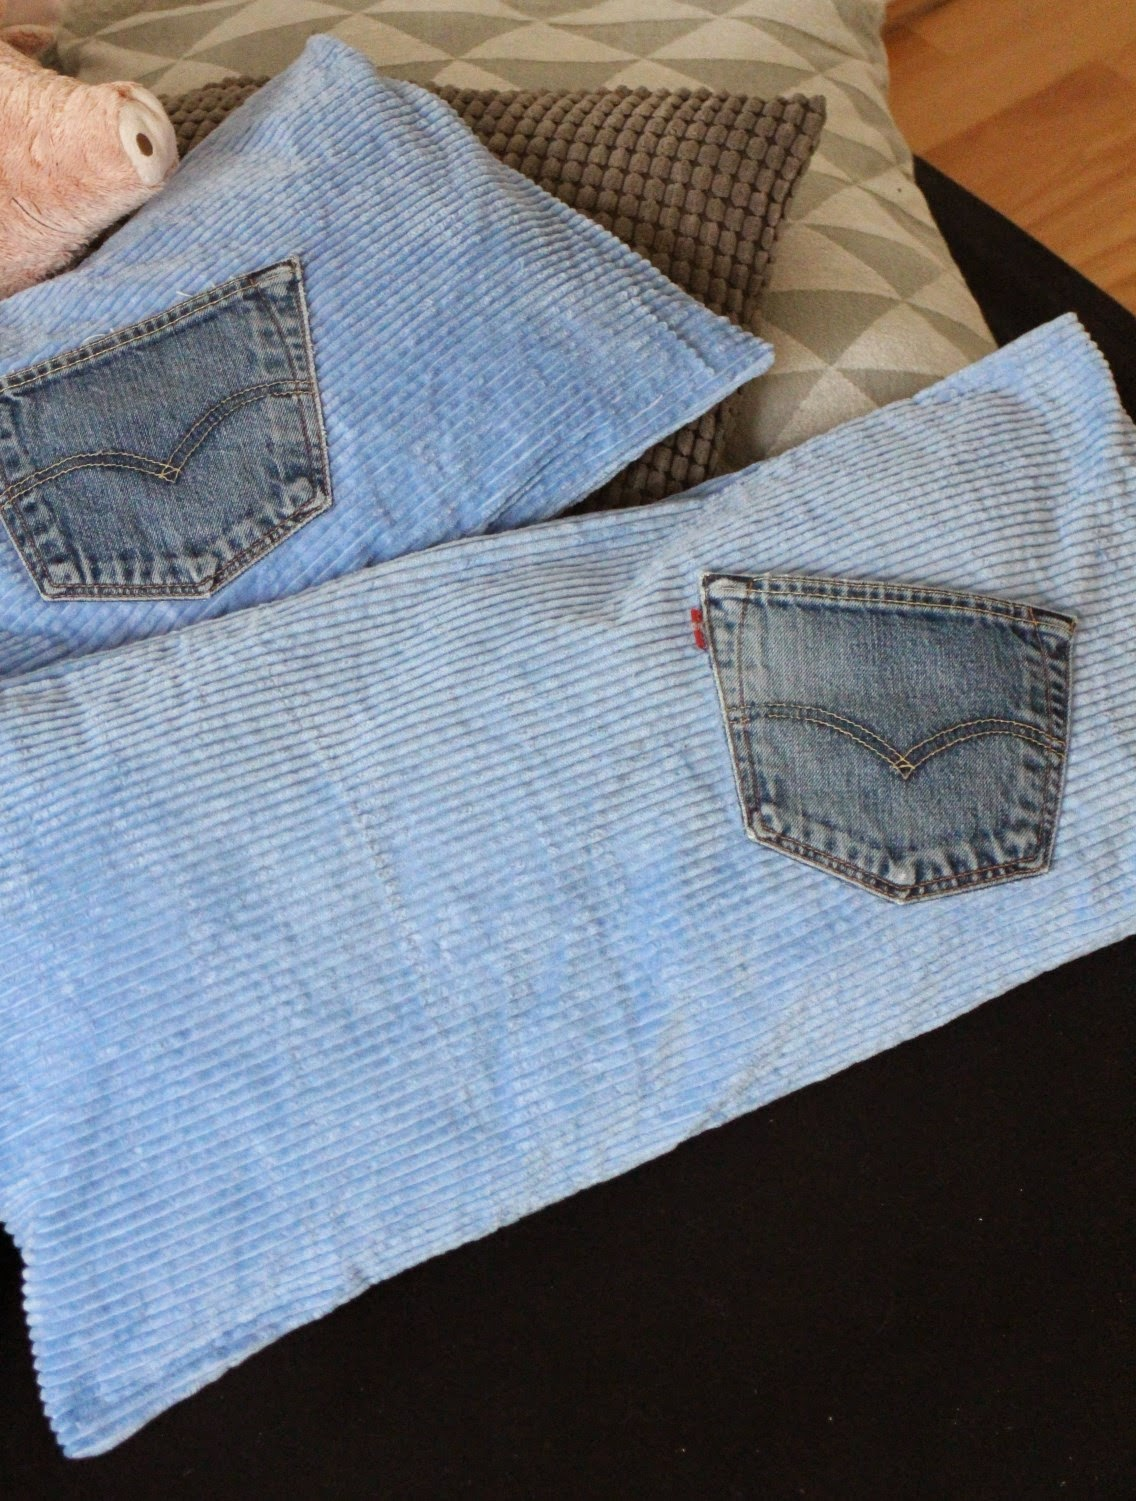 Upcycling Sofakissen aus Vorhang und Hosentaschen / Pillowcases from curtain and jeans pockets